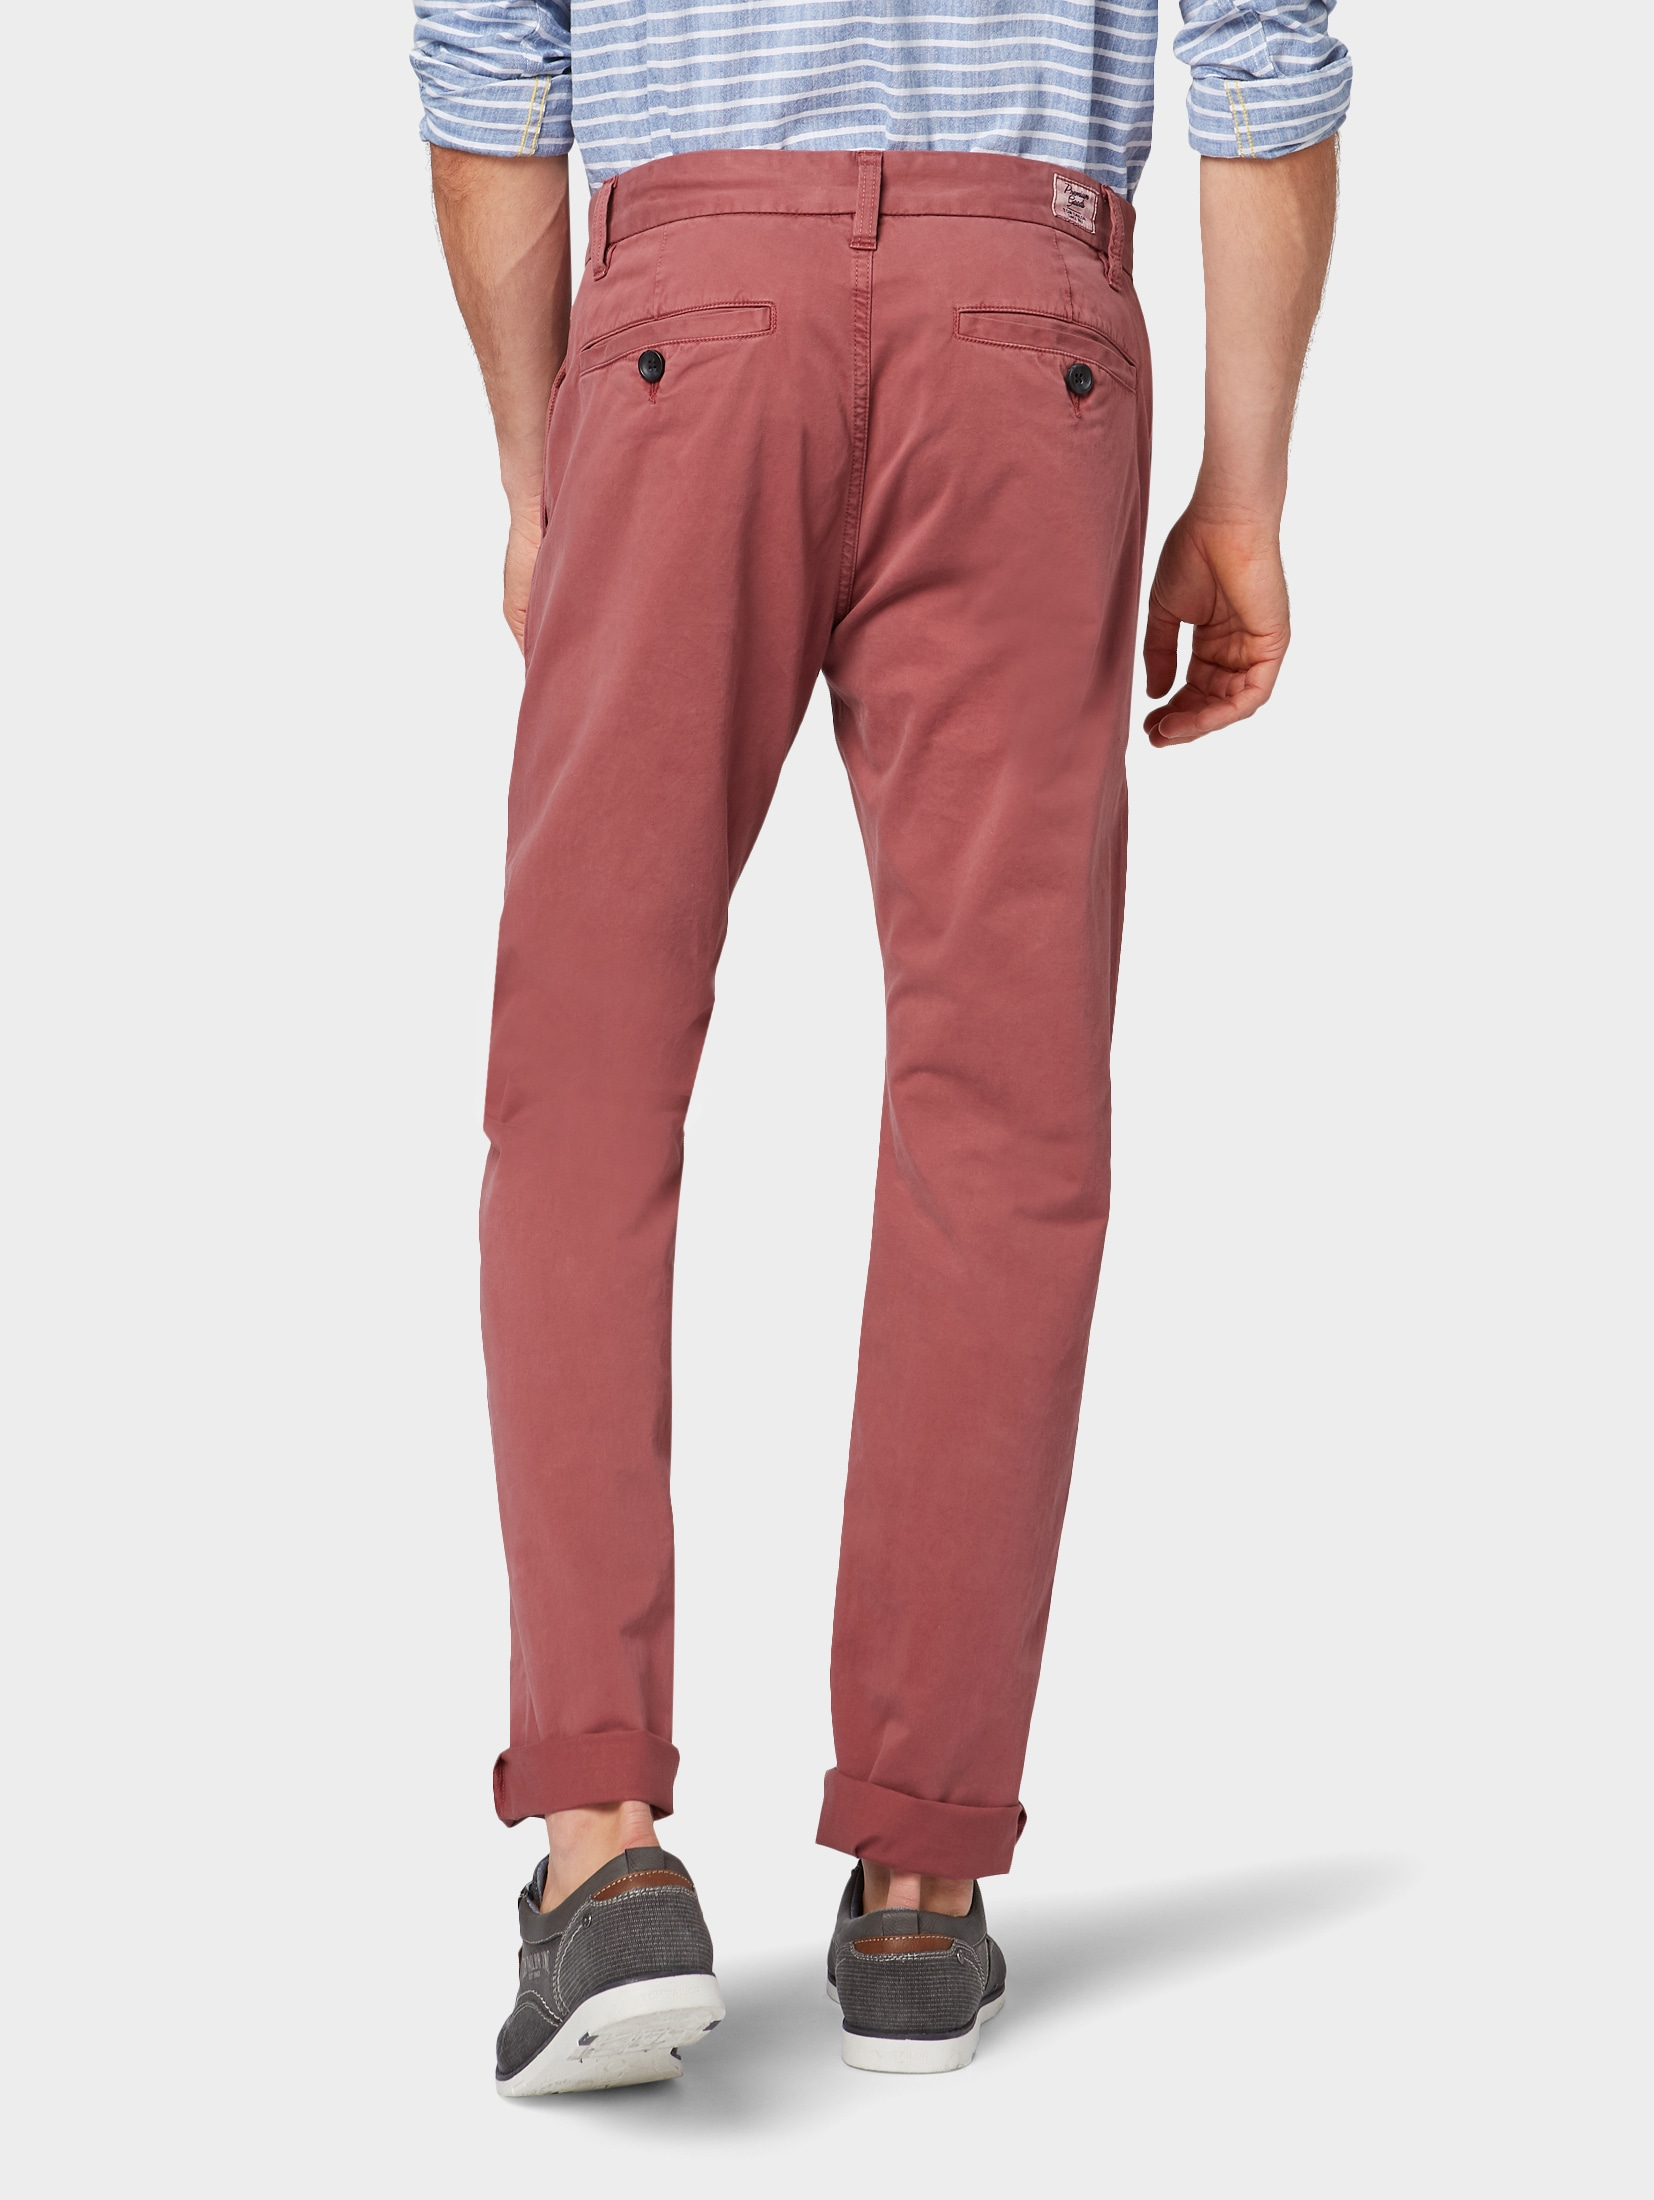 TOM TAILOR Chinohose Travis Slim Chino Hose | Bekleidung > Hosen > Chinohosen | Tom Tailor